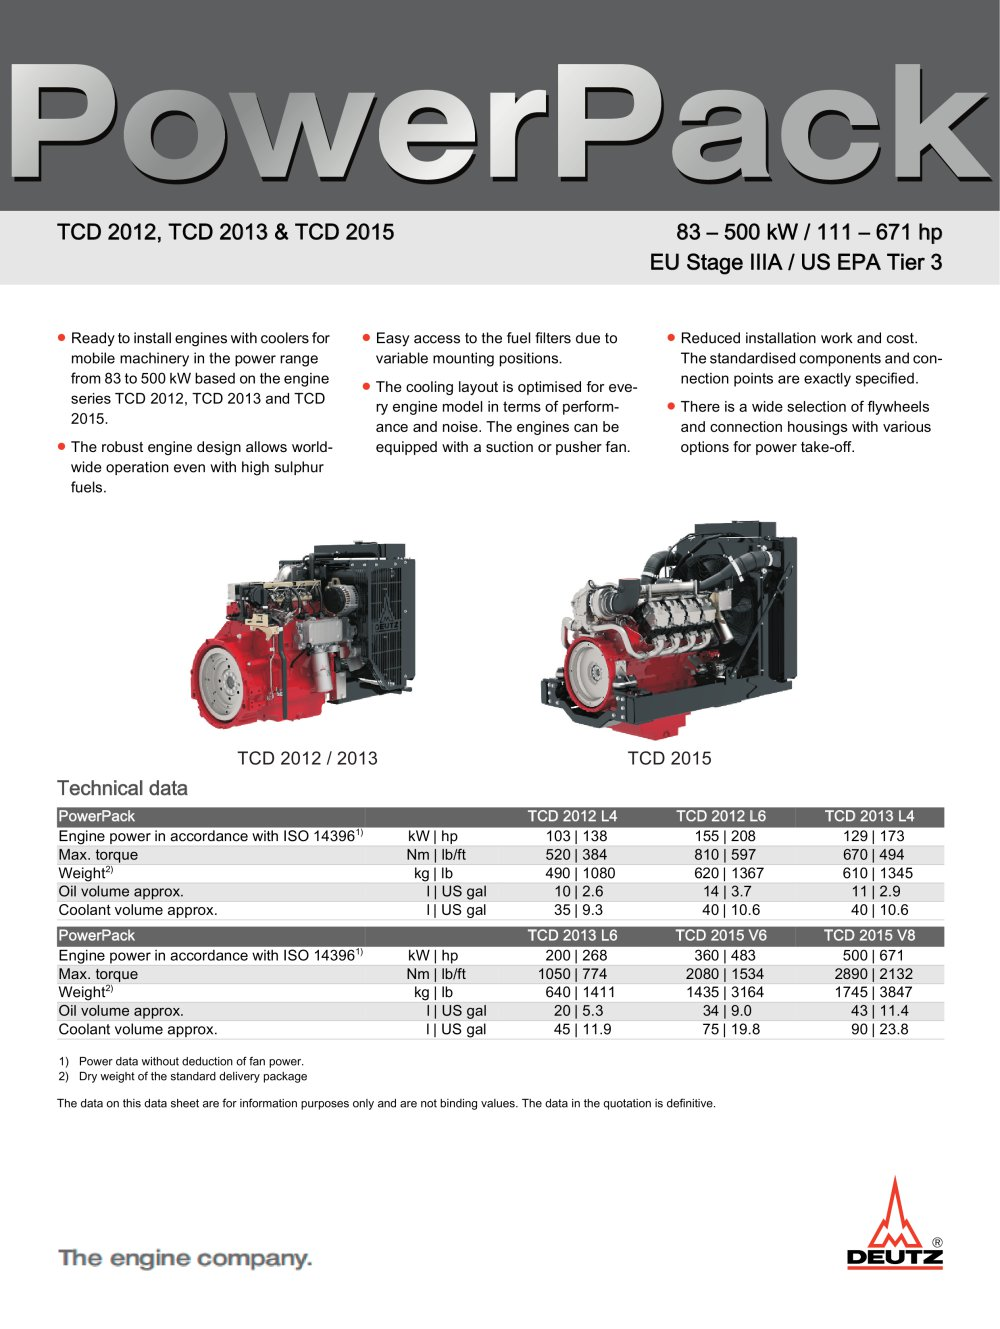 PowerPack TCD 2012, 2013 & 2015 Engine for Industrial Applications - 1 / 2  Pages